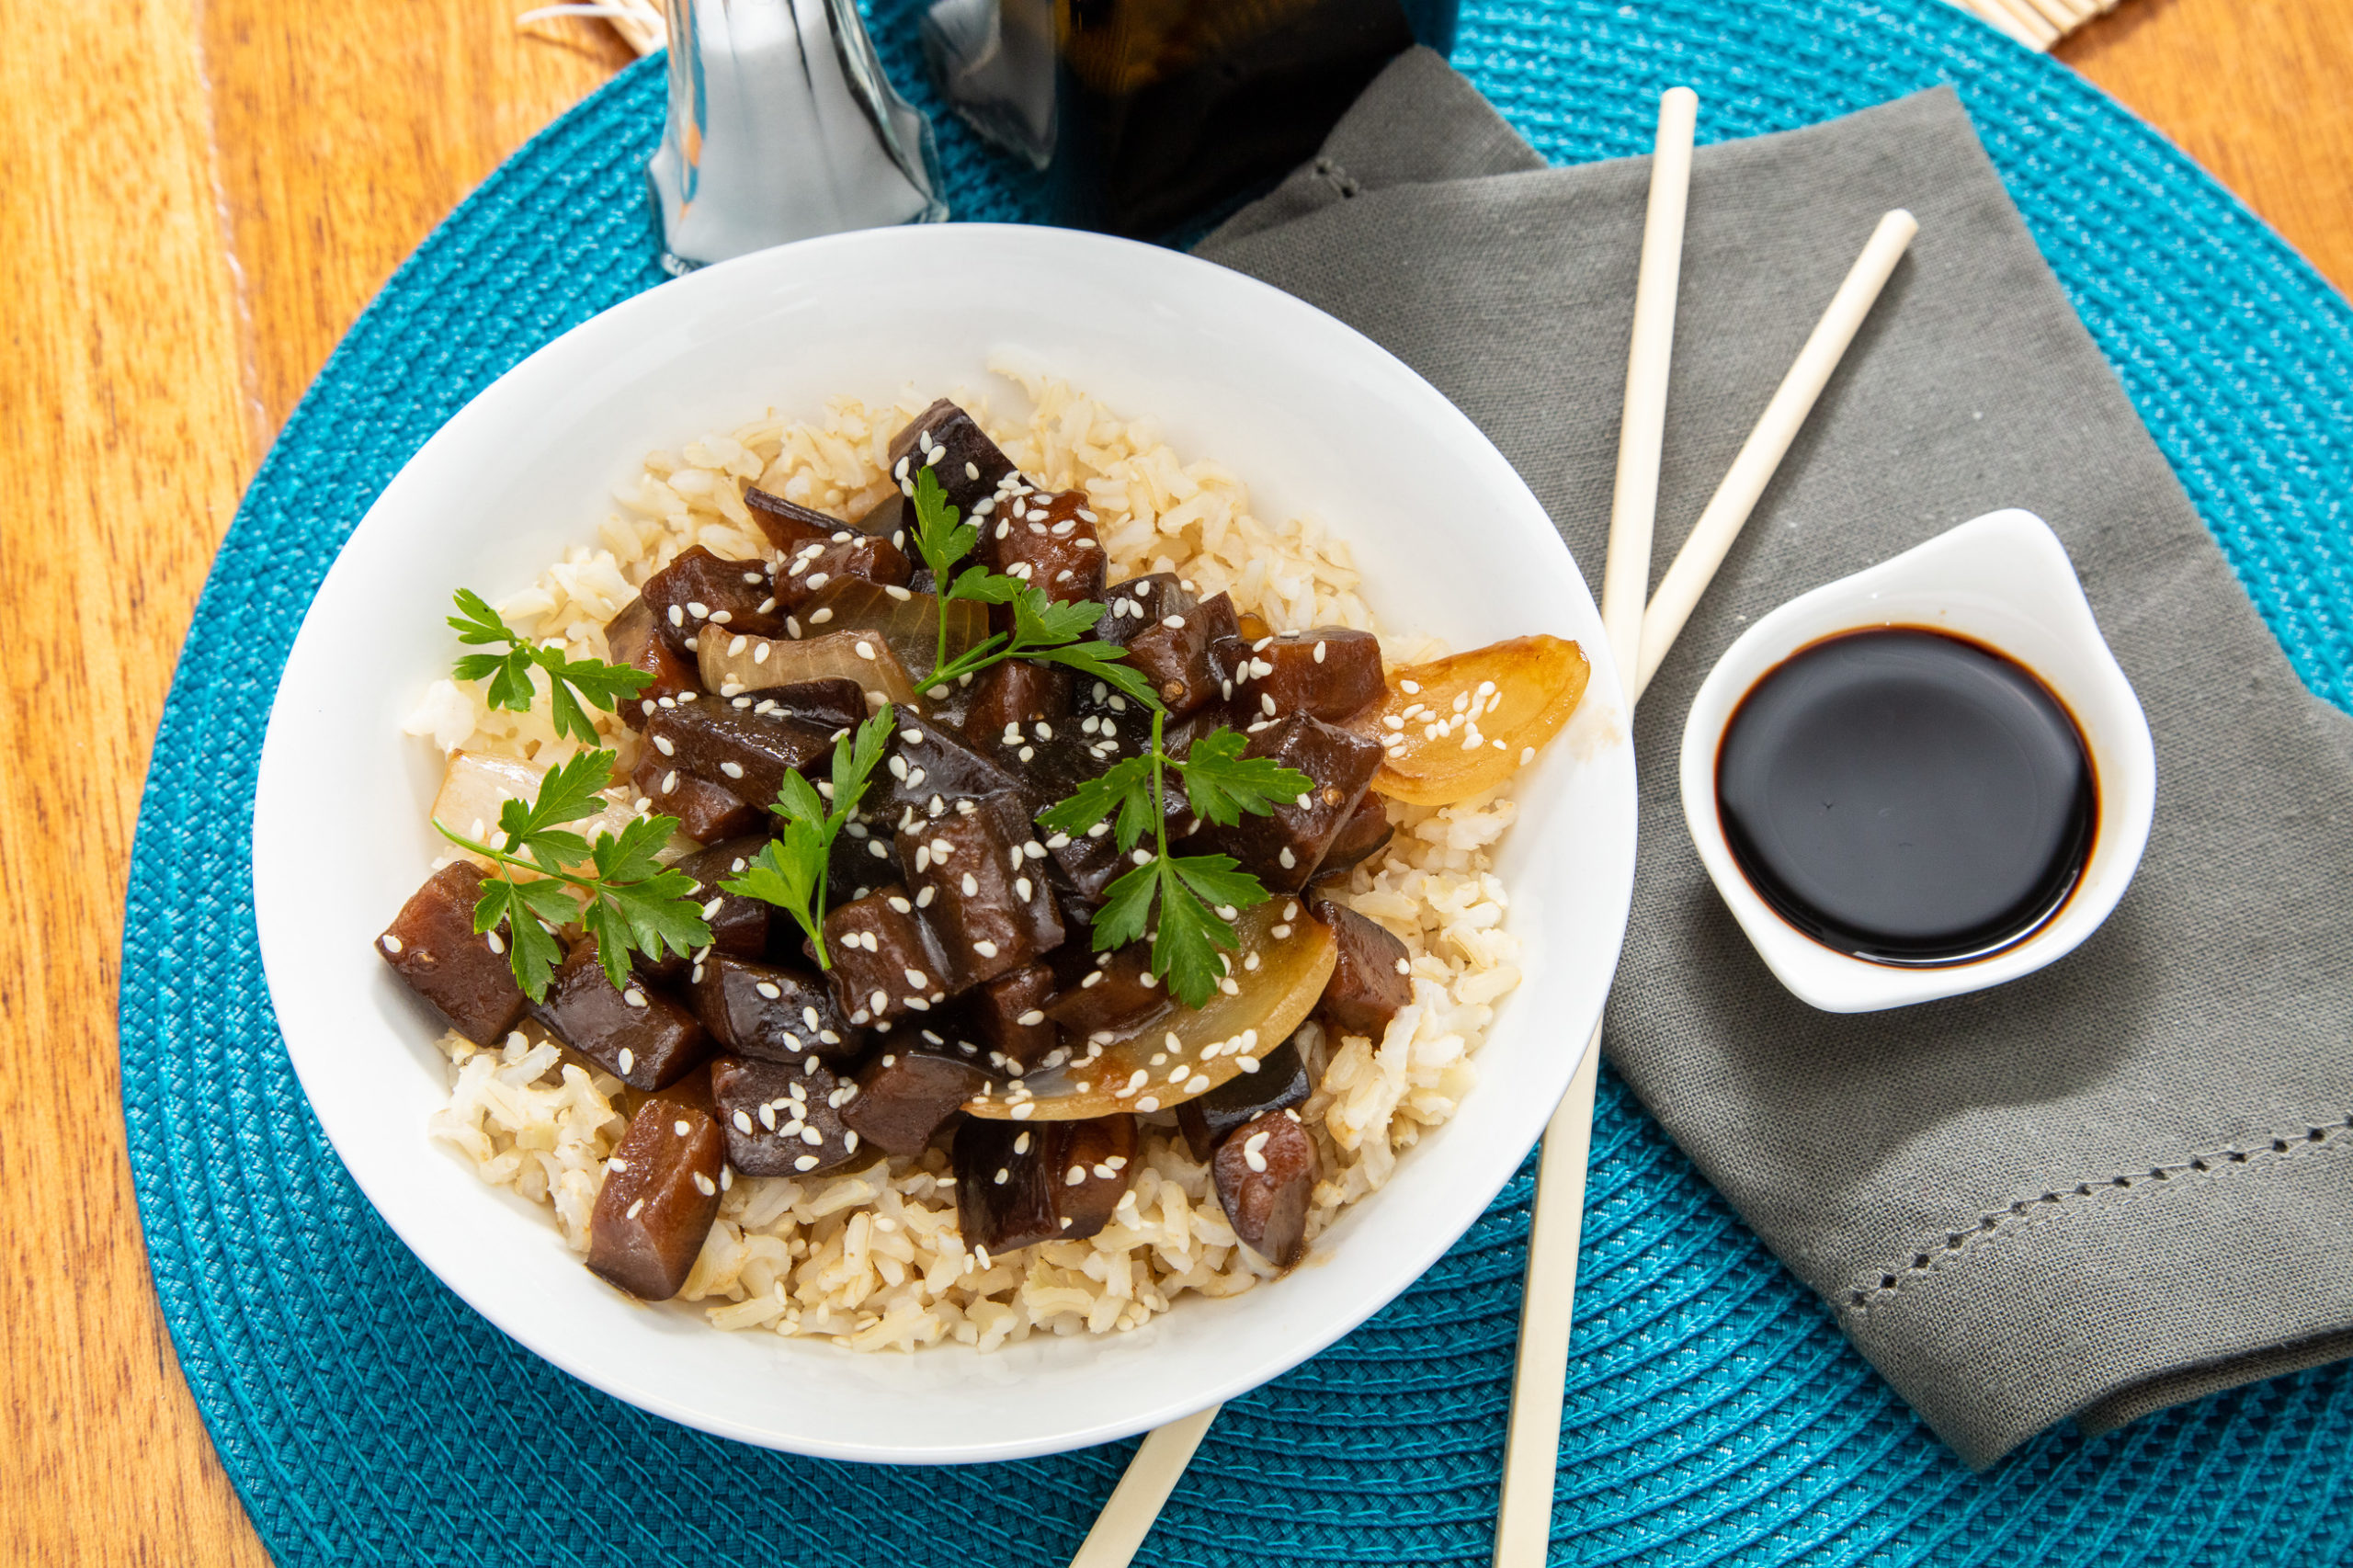 Cheats Vegan Aubergine Teriyaki Recipe